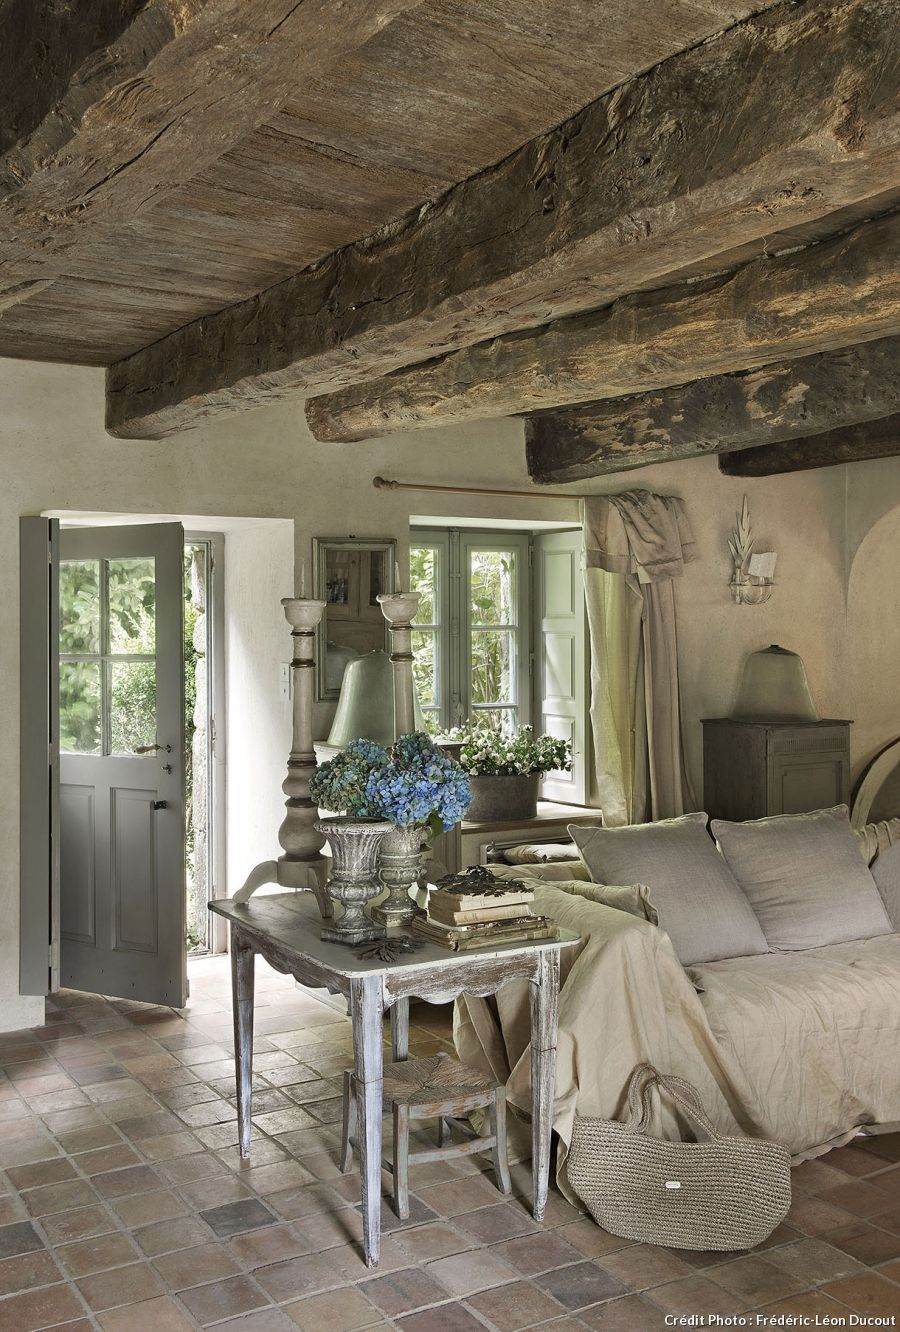 1000+ images about Rustic Provençal - French Rustic on Pinterest ...